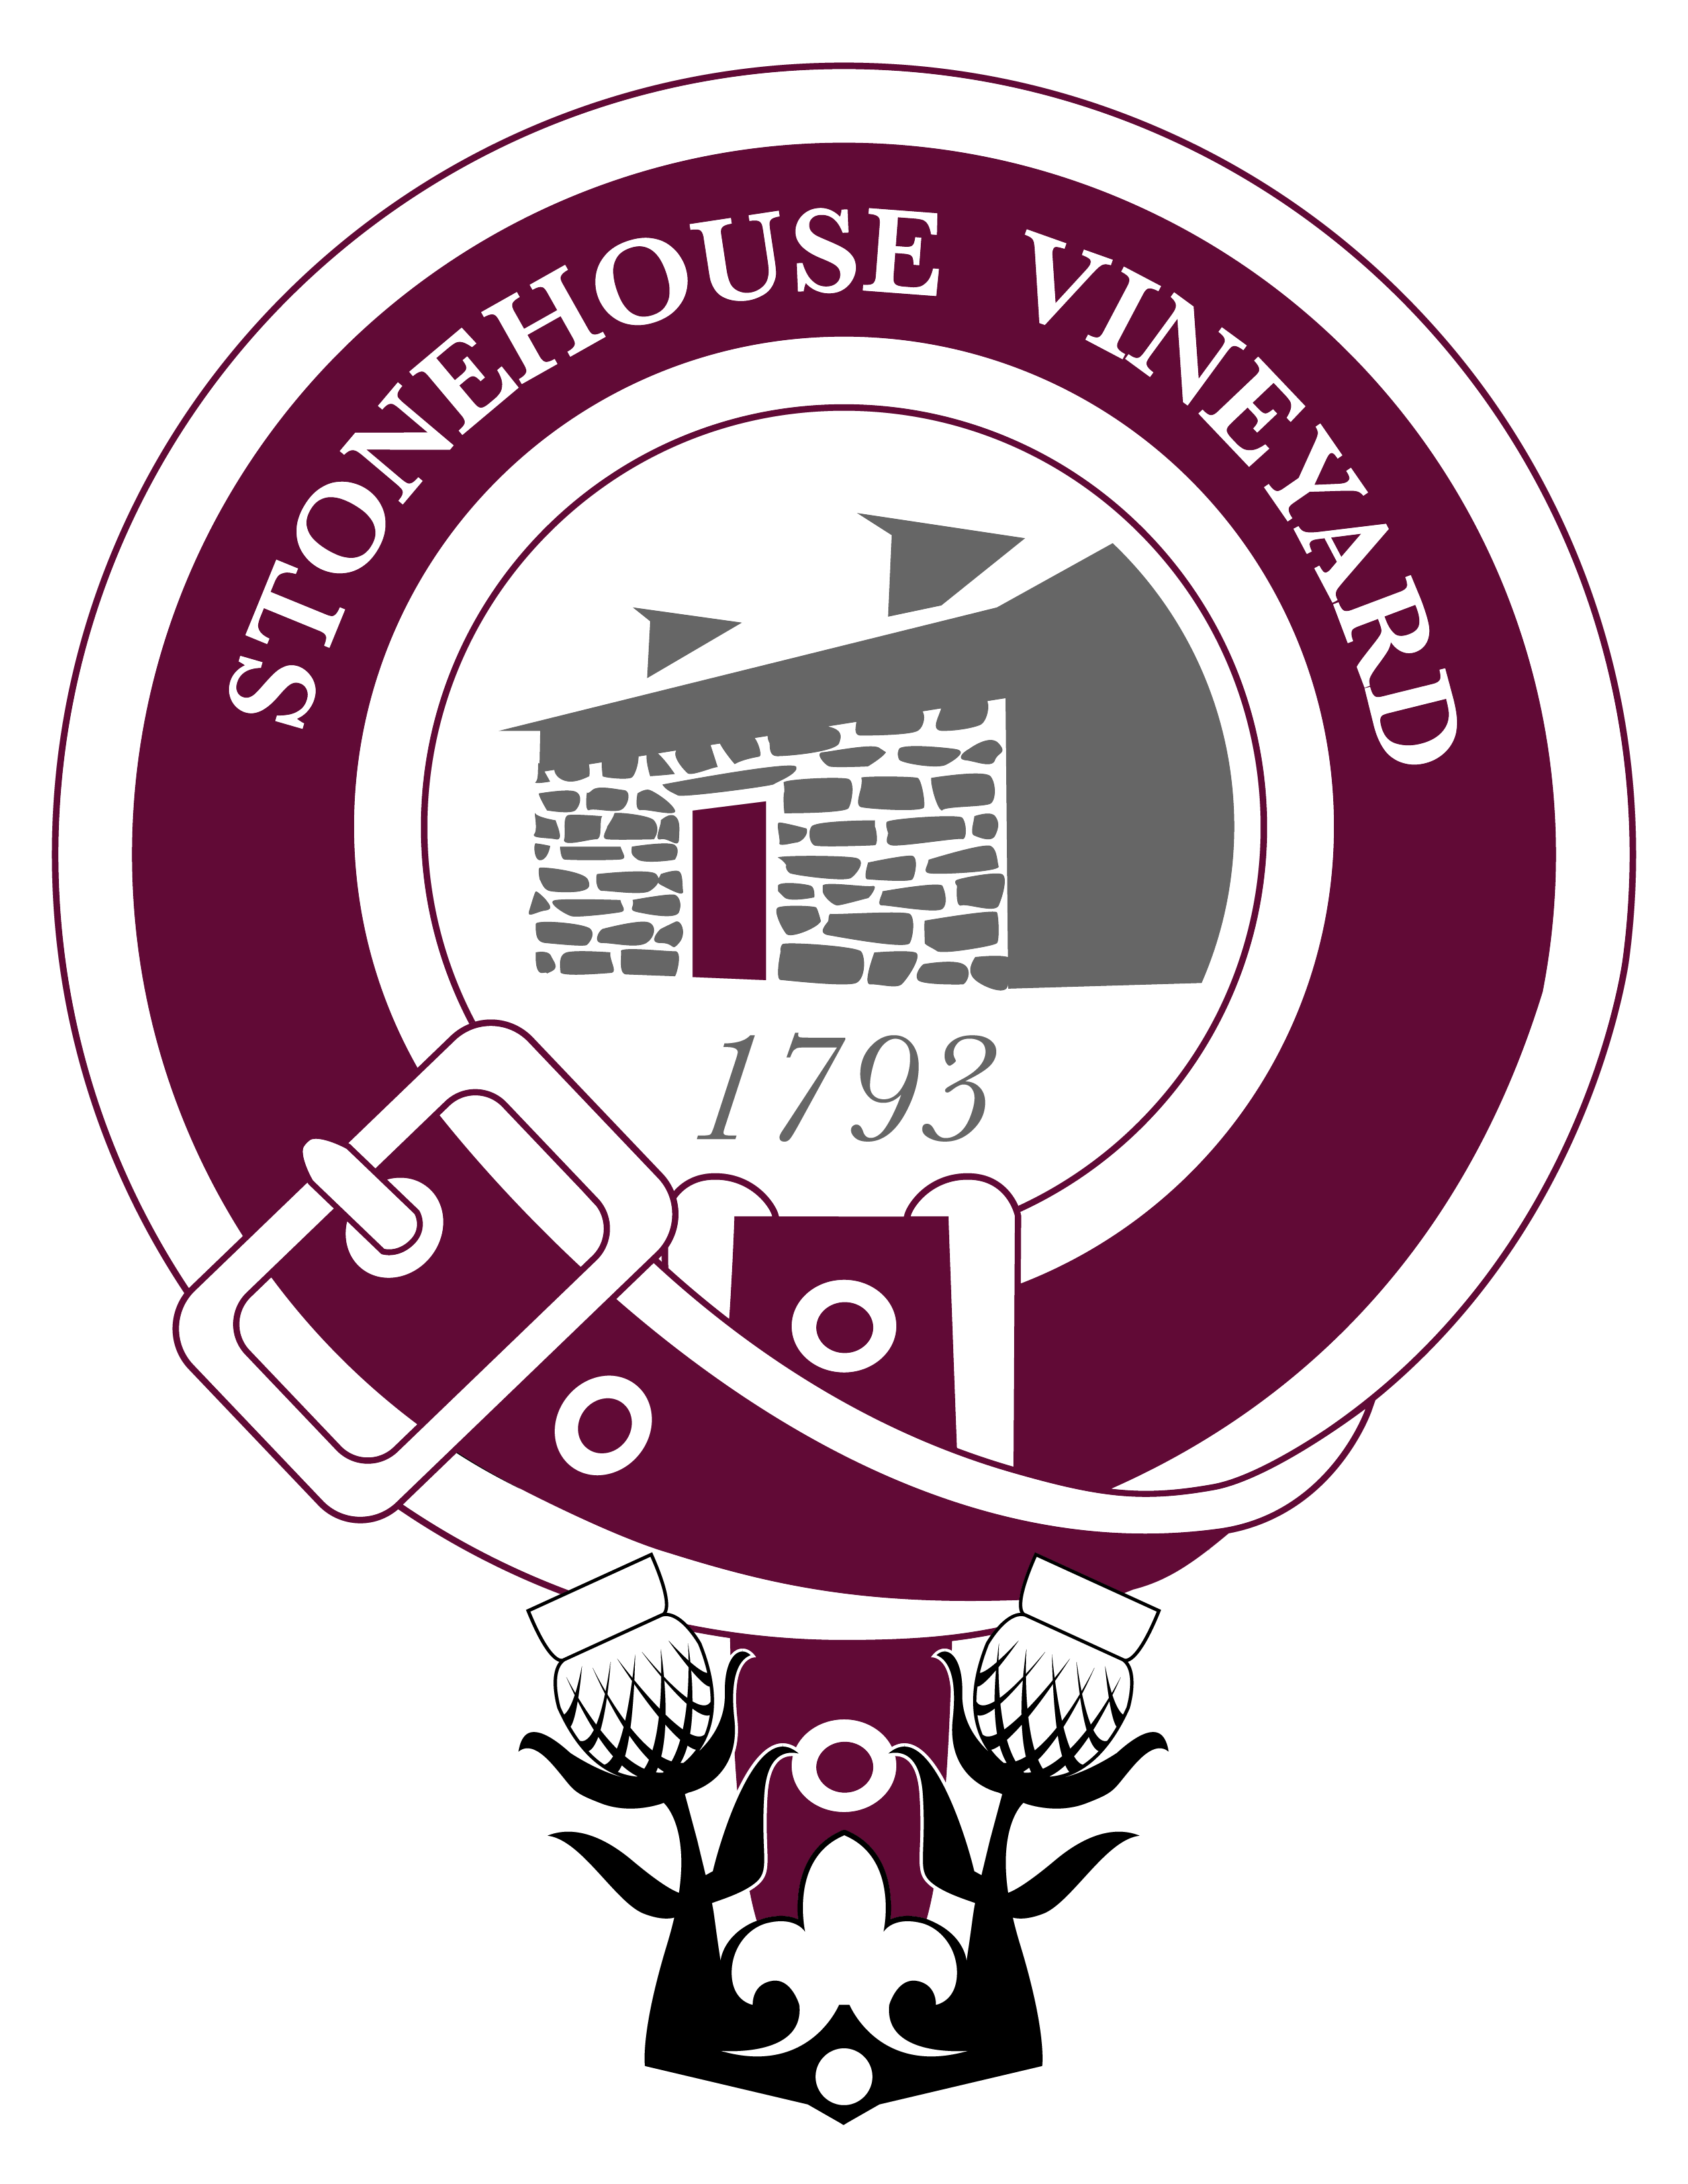 Stonehouse Vineyard Gift Certificate $25